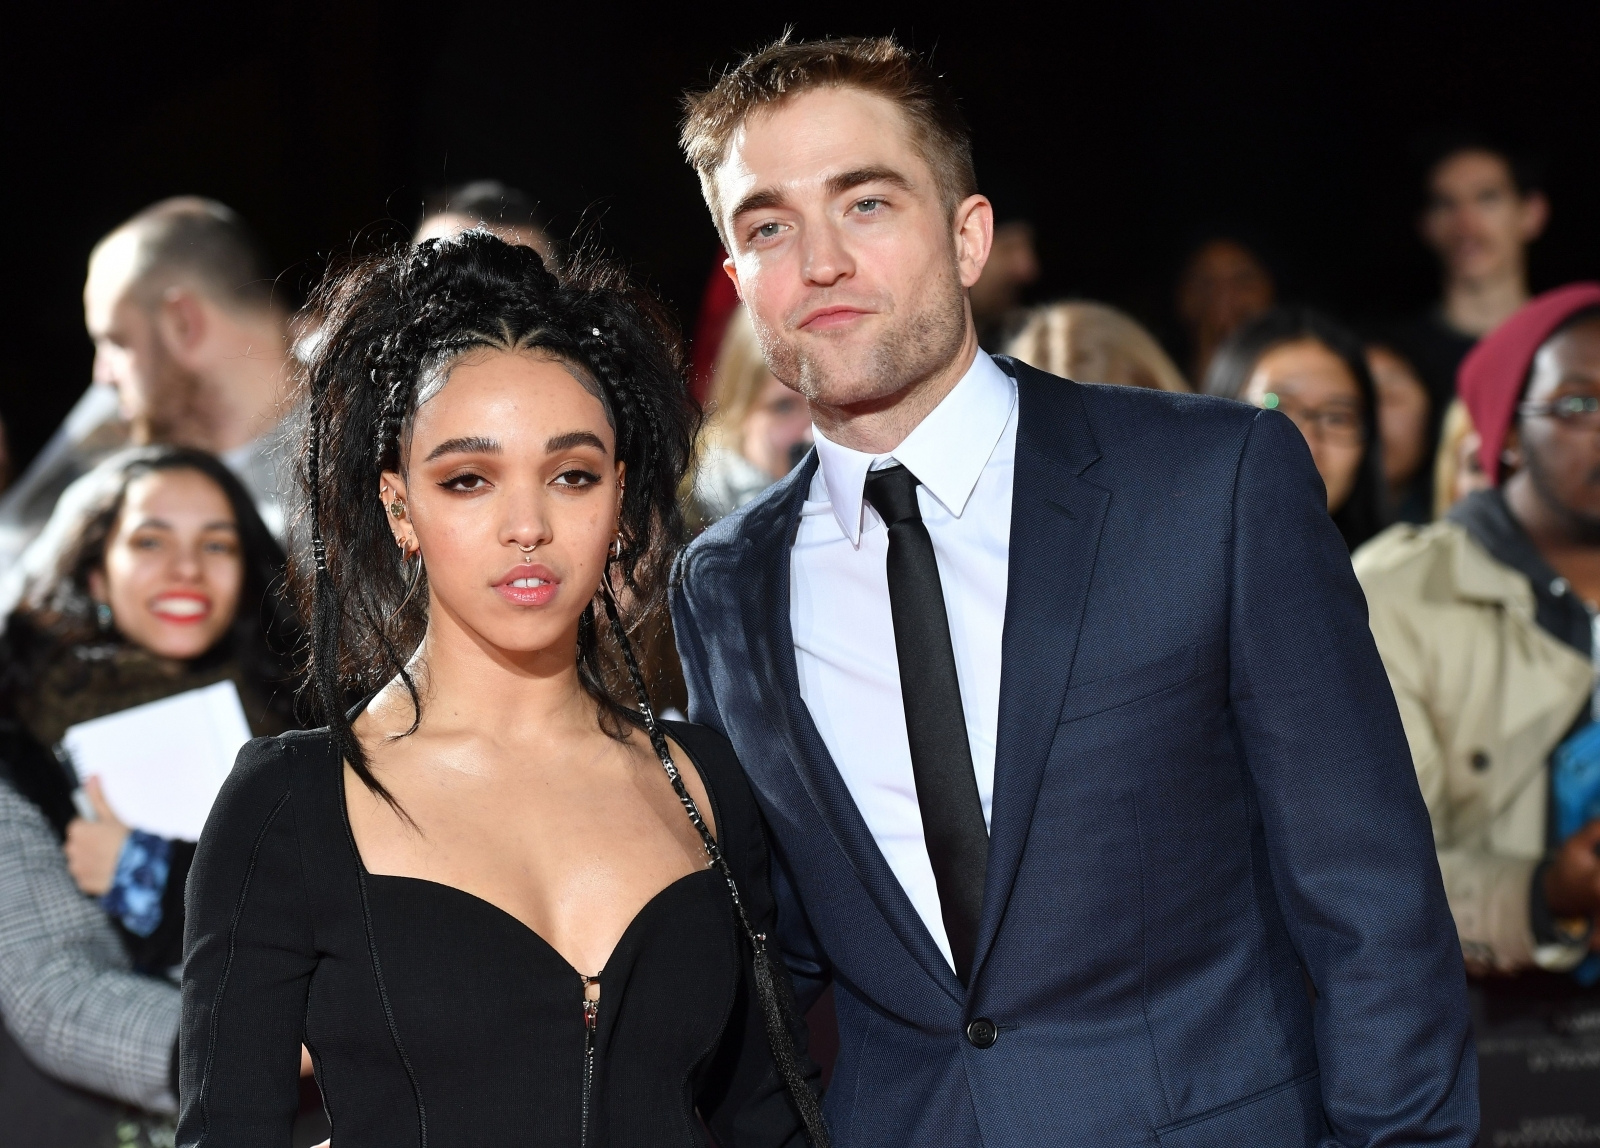 Robert Pattinson gushes over 'amazing' girlfriend FKA Twigs after confirming engagement